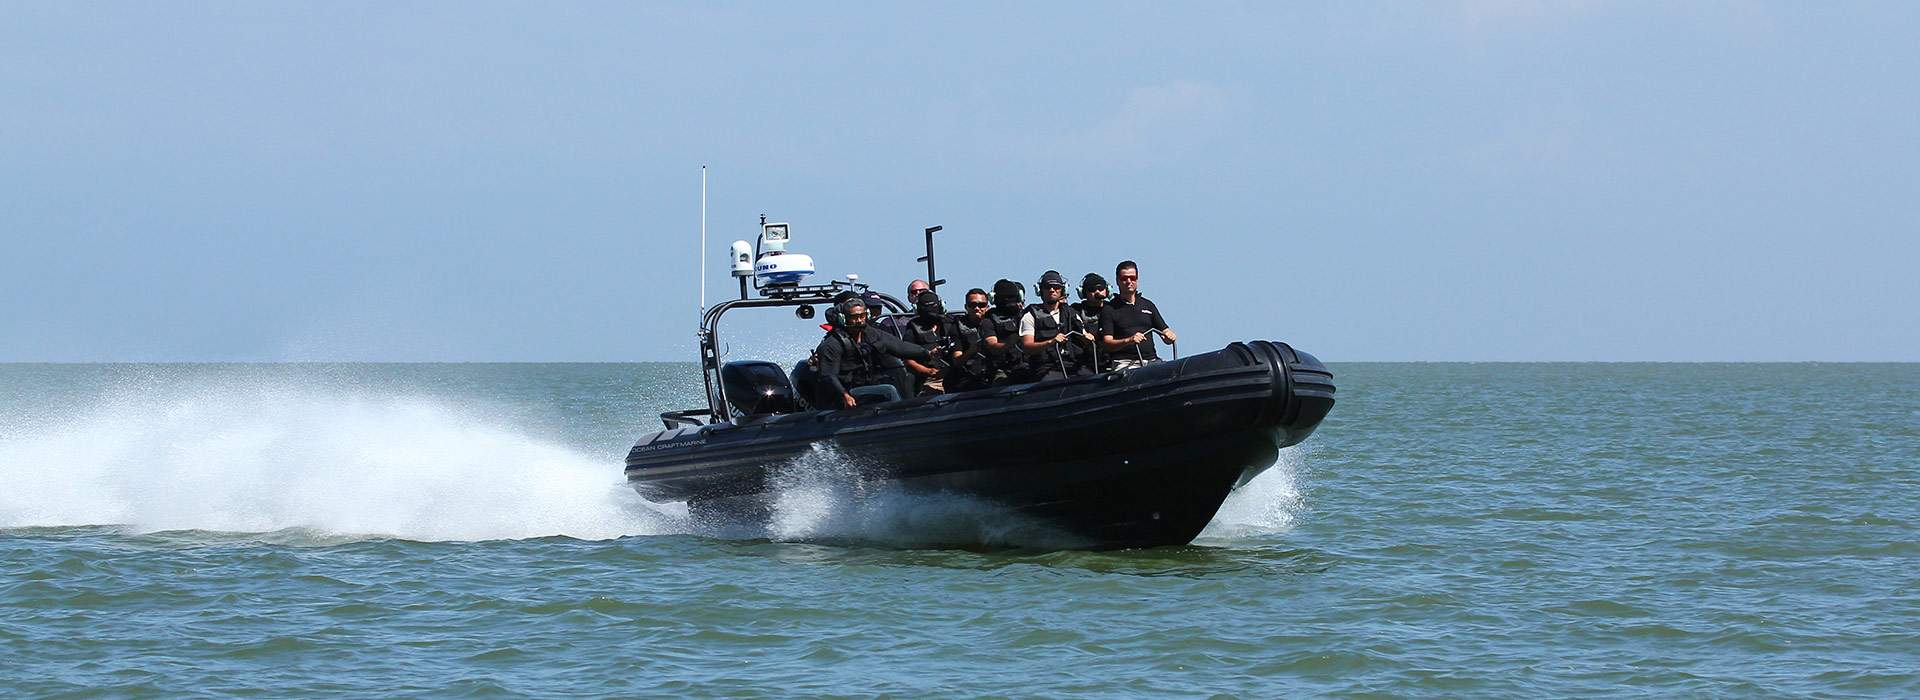 Ocean Craft Marine's Todd Salus Delivers New Boat and Training to the Royal Brunei Police